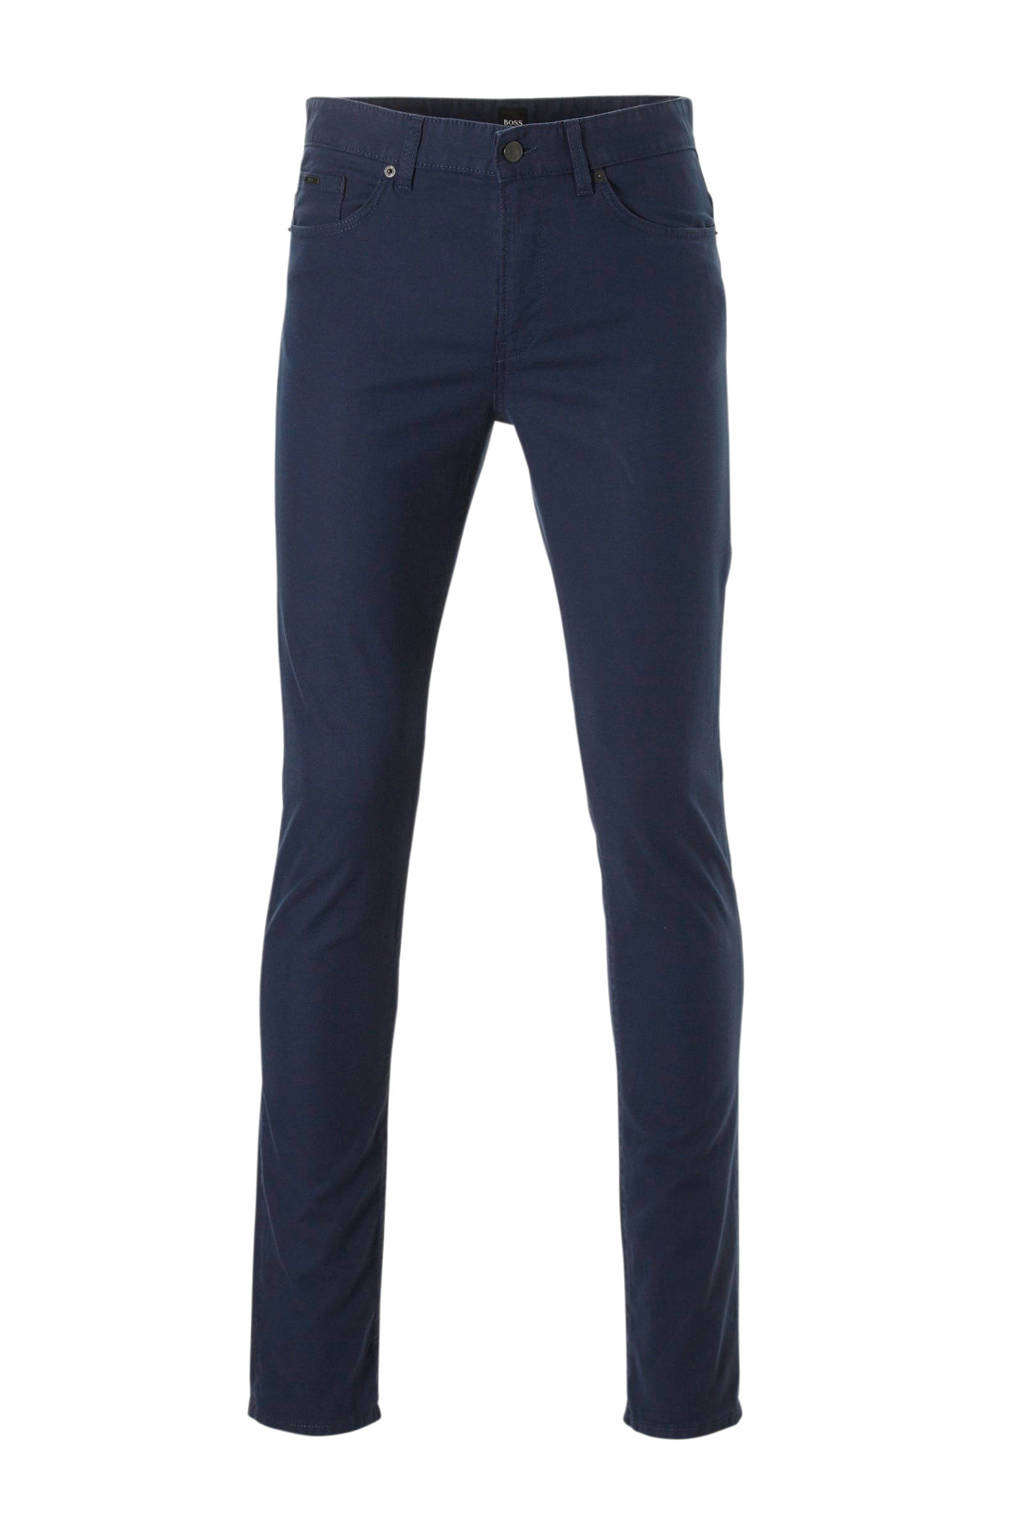 Boss Business slim fit broek, Donkerblauw